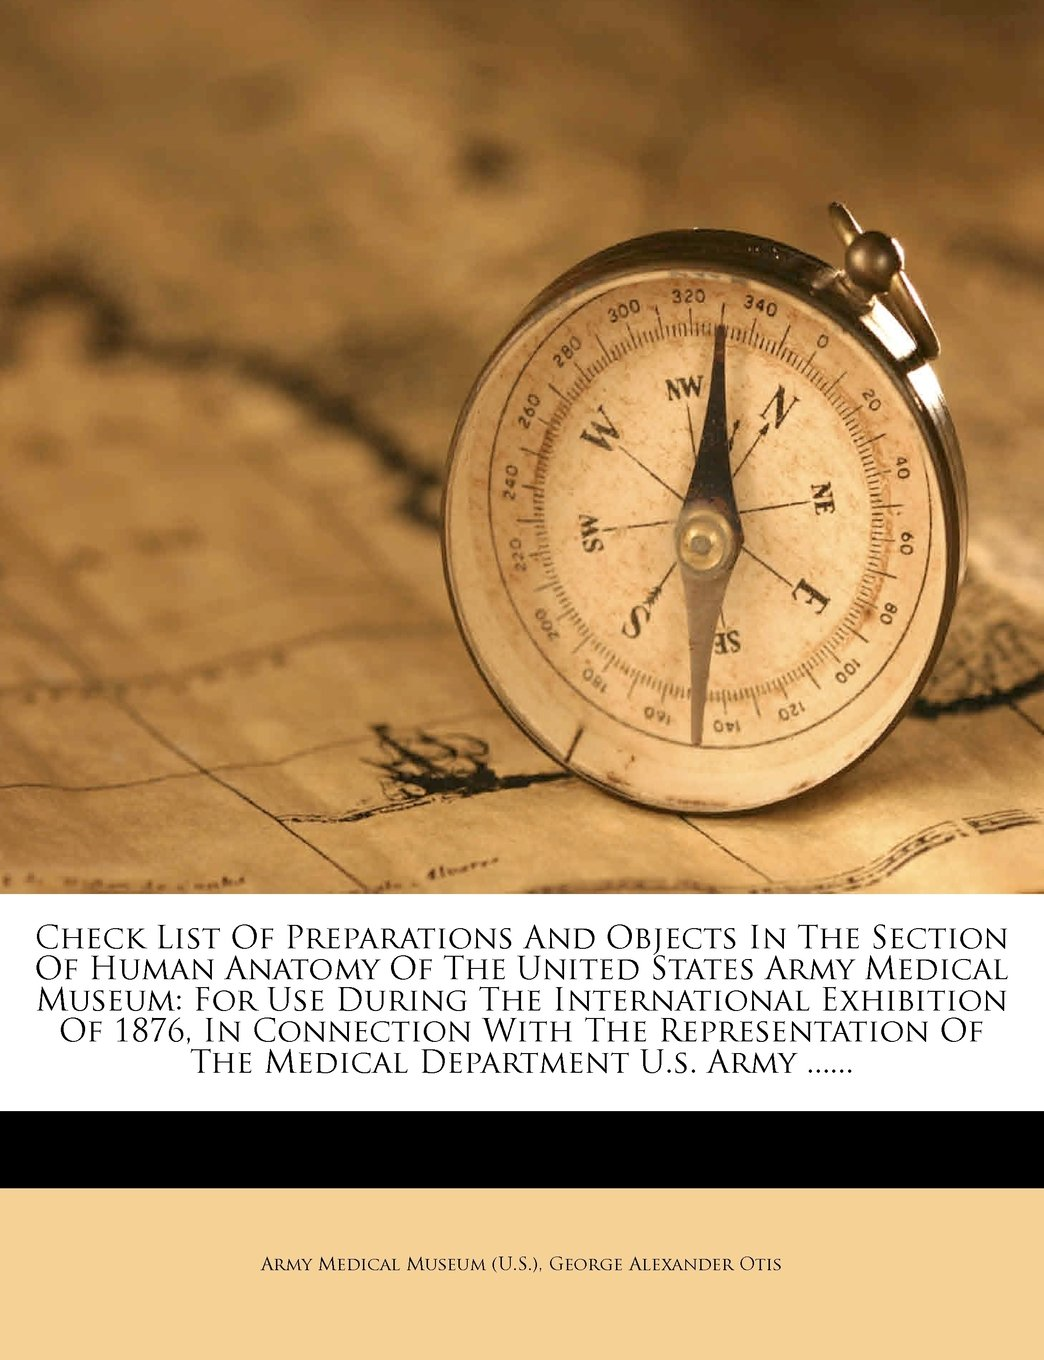 Check List Of Preparations And Objects In The Section Of Human Anatomy Of The United States Army Medical Museum: For Use During The International ... Of The Medical Department U.s. Army ...... ePub fb2 book